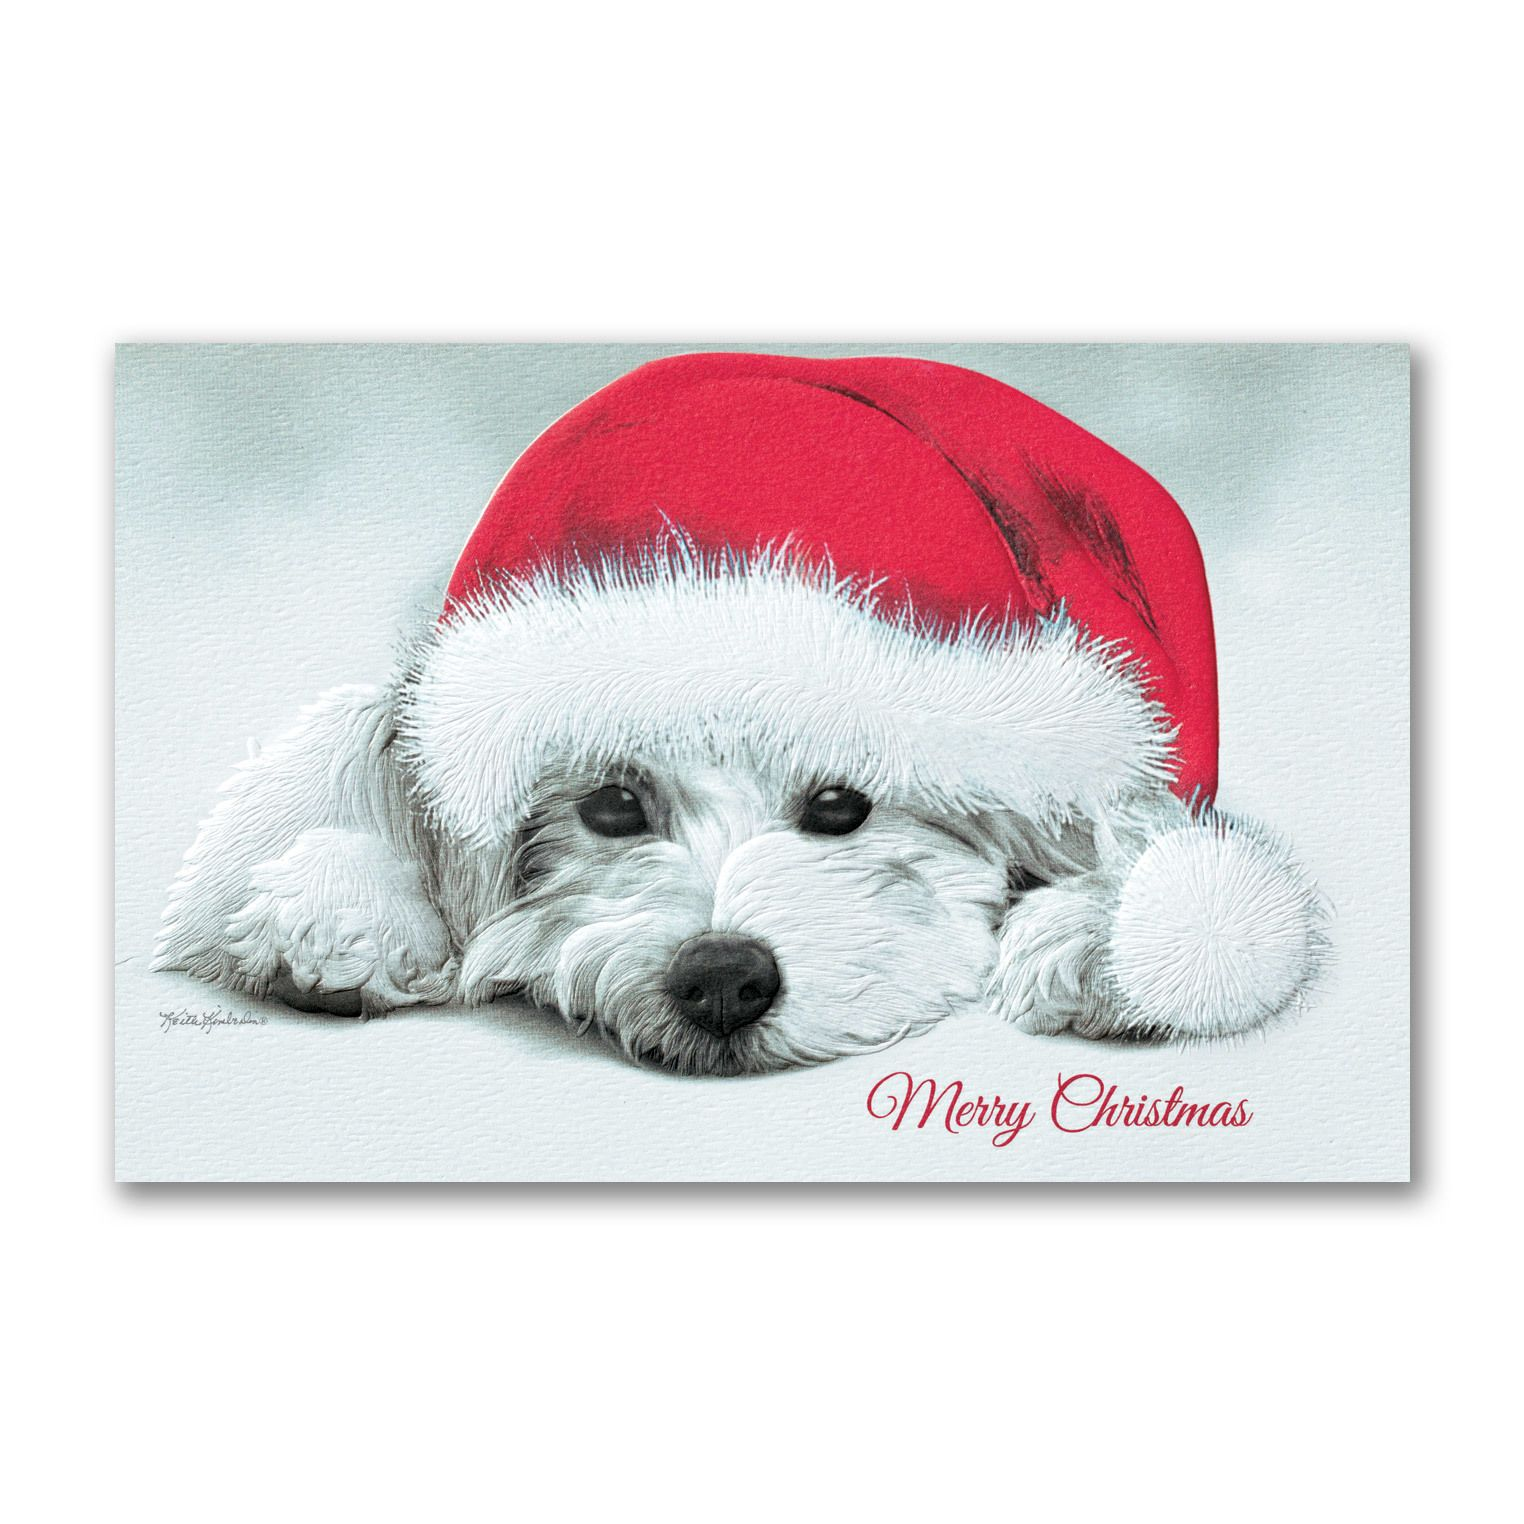 Christmas Puppy - Christmas Card | Christmas Cards | Pinterest